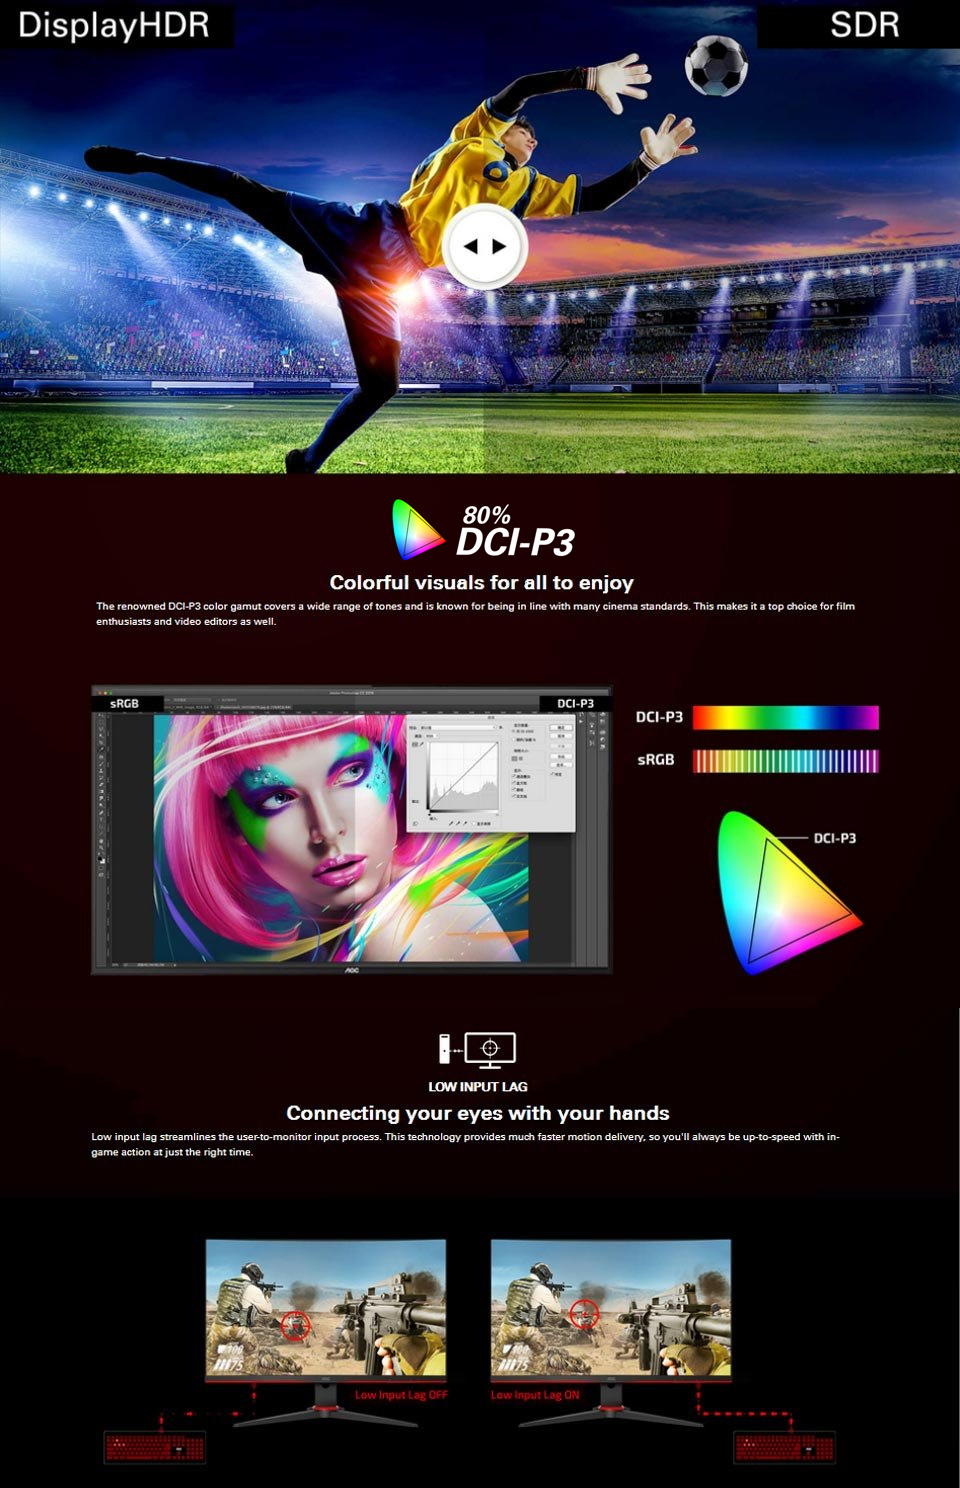 AOC 24G2E5 FHD Adaptive-Sync HDR IPS 23.8in Monitor features 2